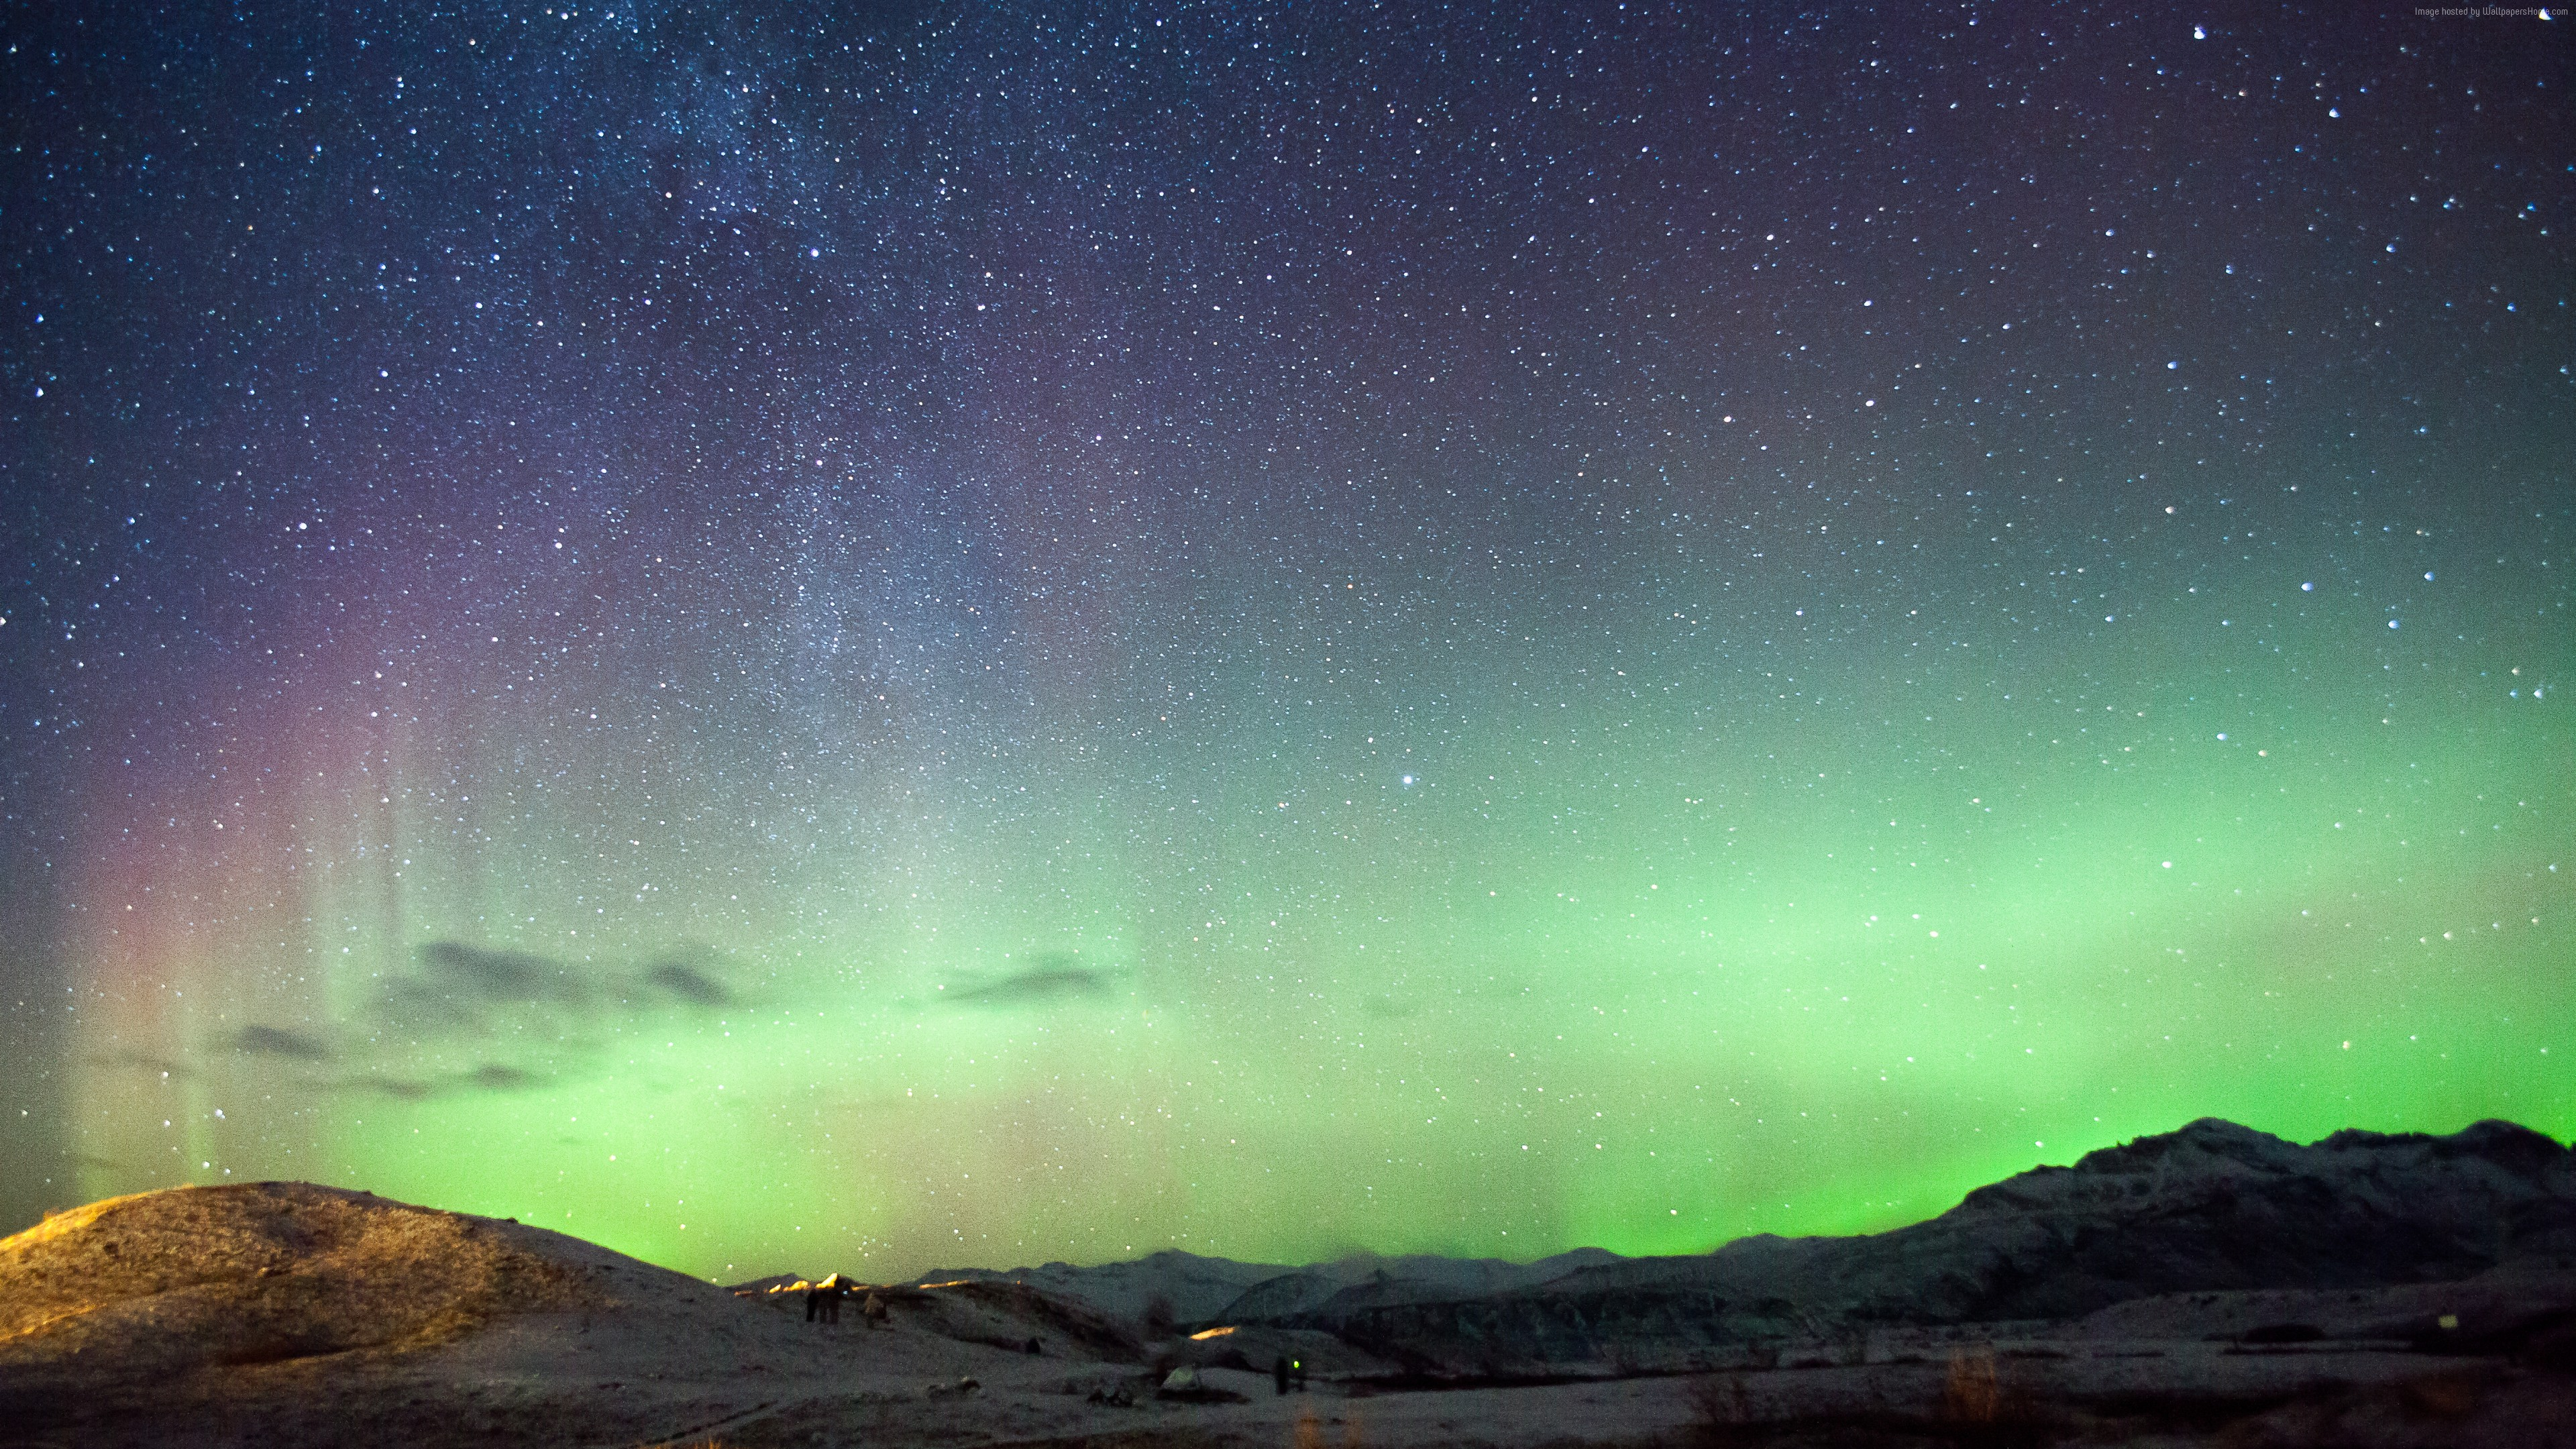 Wallpaper Iceland, 5k, 4k wallpaper, northern lights, mountains, night, stars, Space